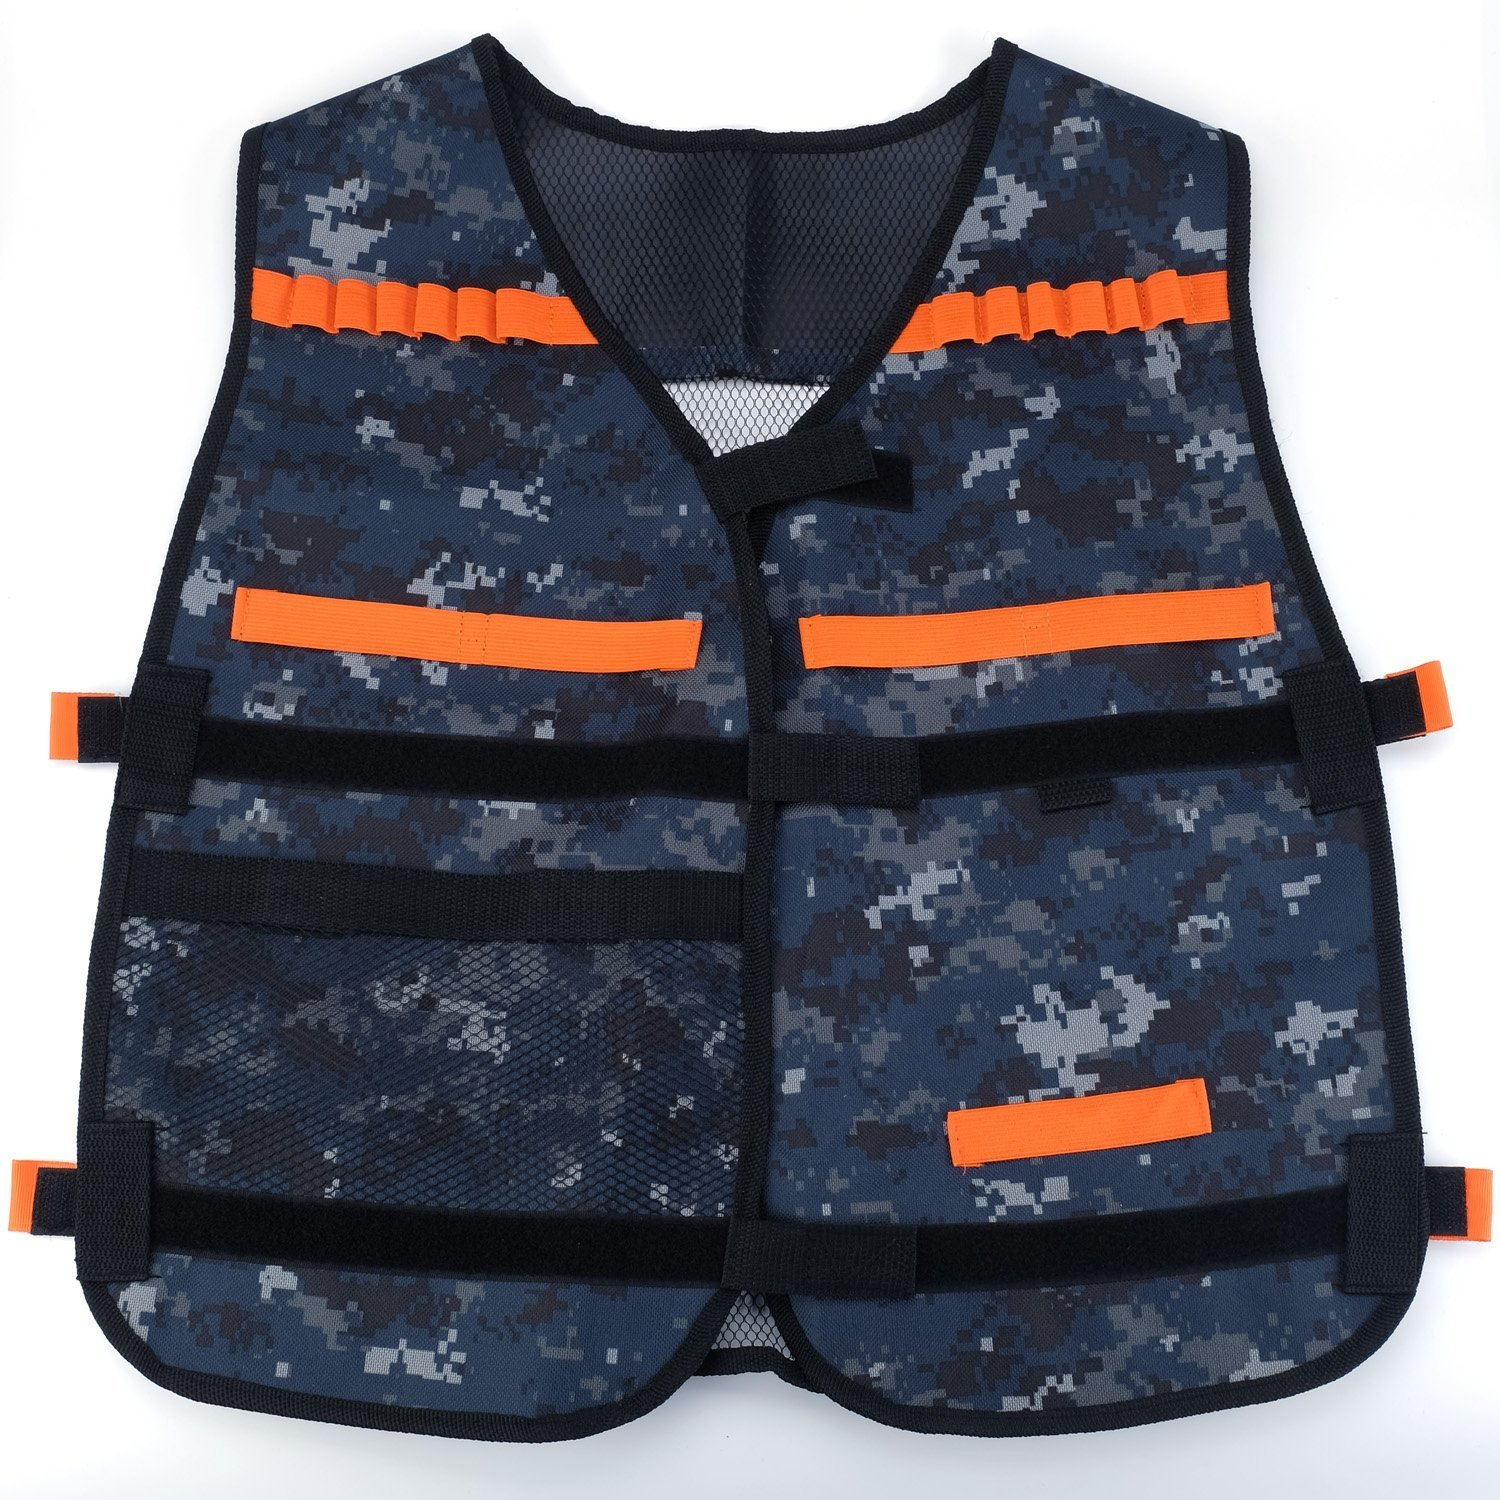 Guolong Adjustable Elite Tactical Vest With Storage Pocket For Nerf N-strike Elite Series Blasters Kid Toy Play And Other Outdoor Activities-Thicker Version